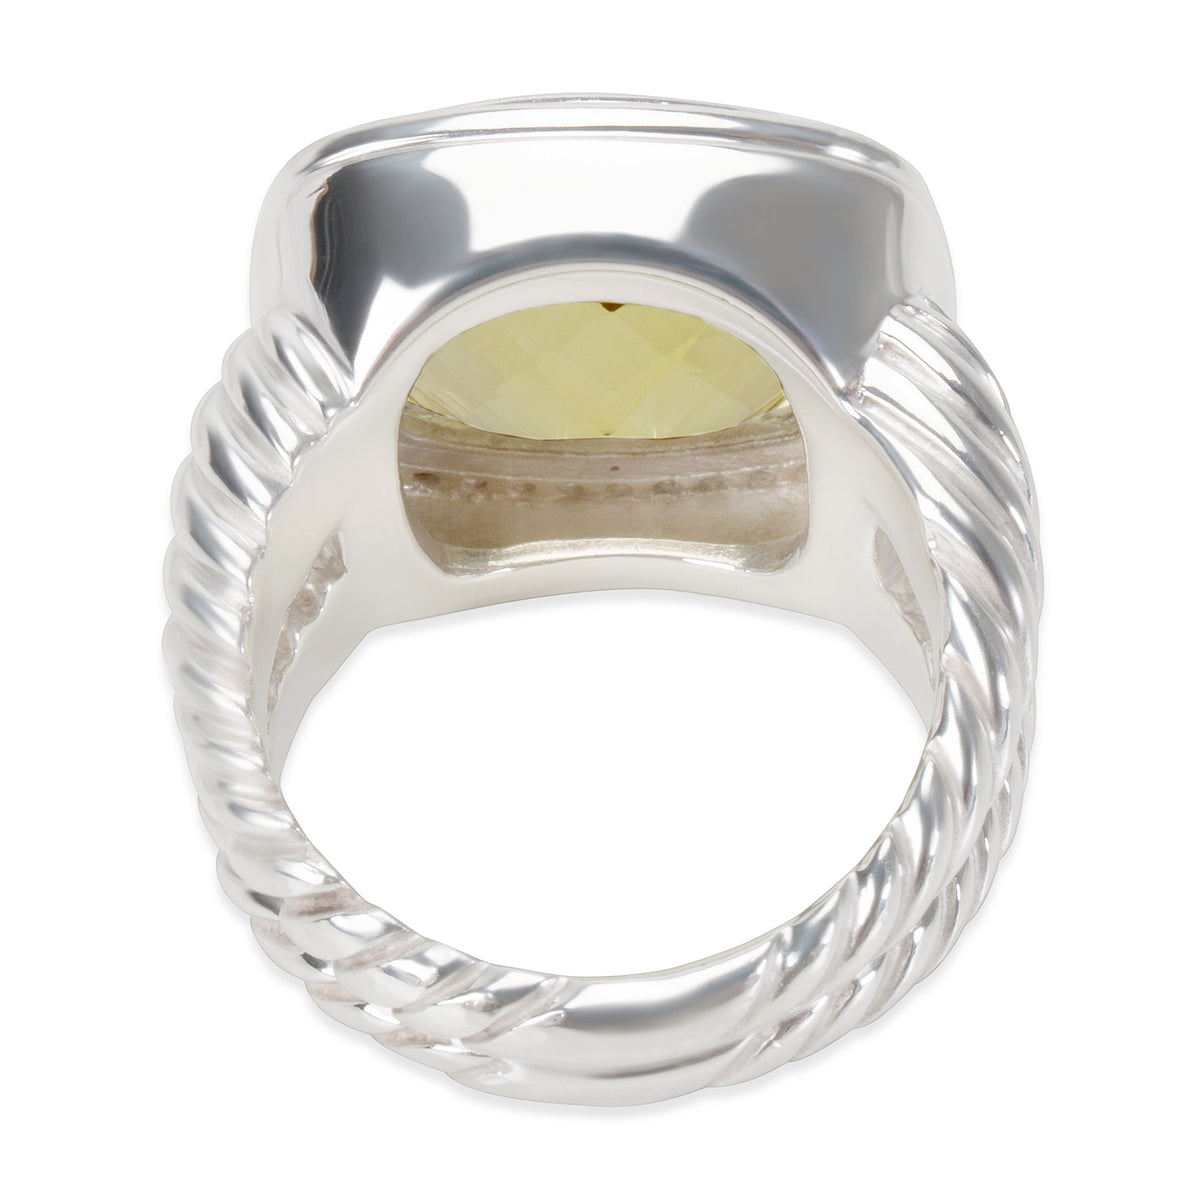 David Yurman Albion Ring with Prasiolite and Diamonds 14mm  0.45 ctw